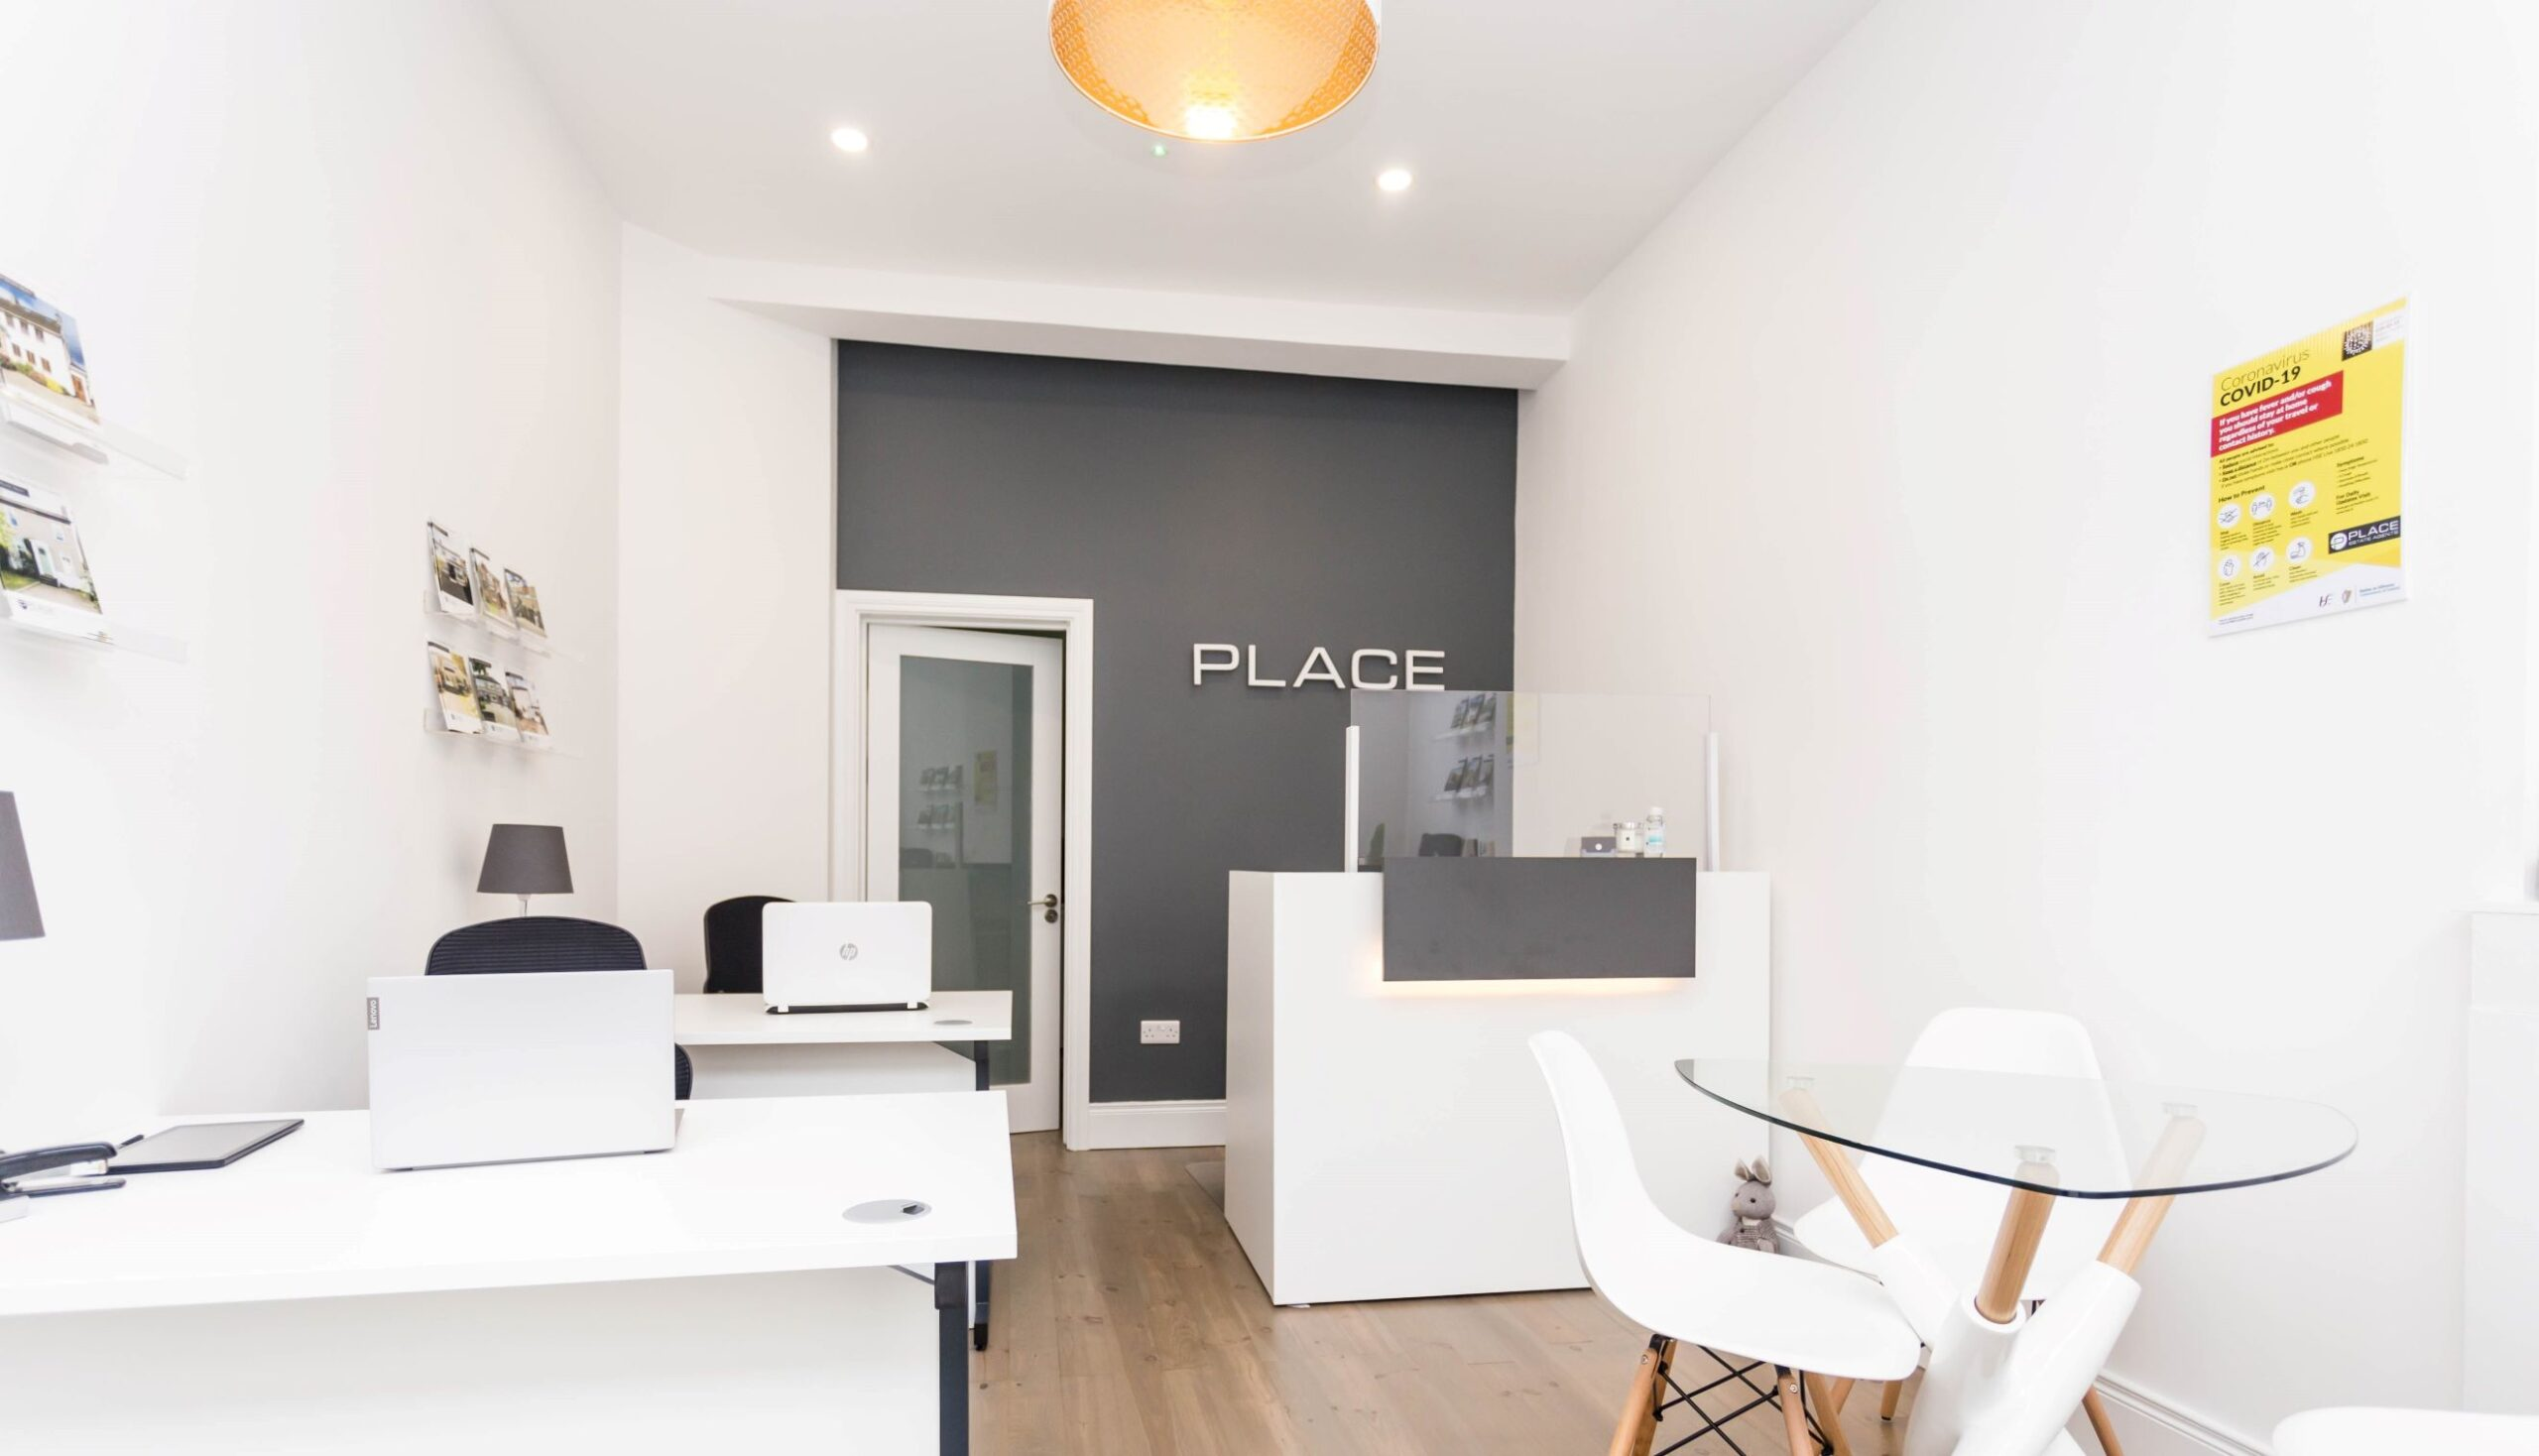 Place estate agents office